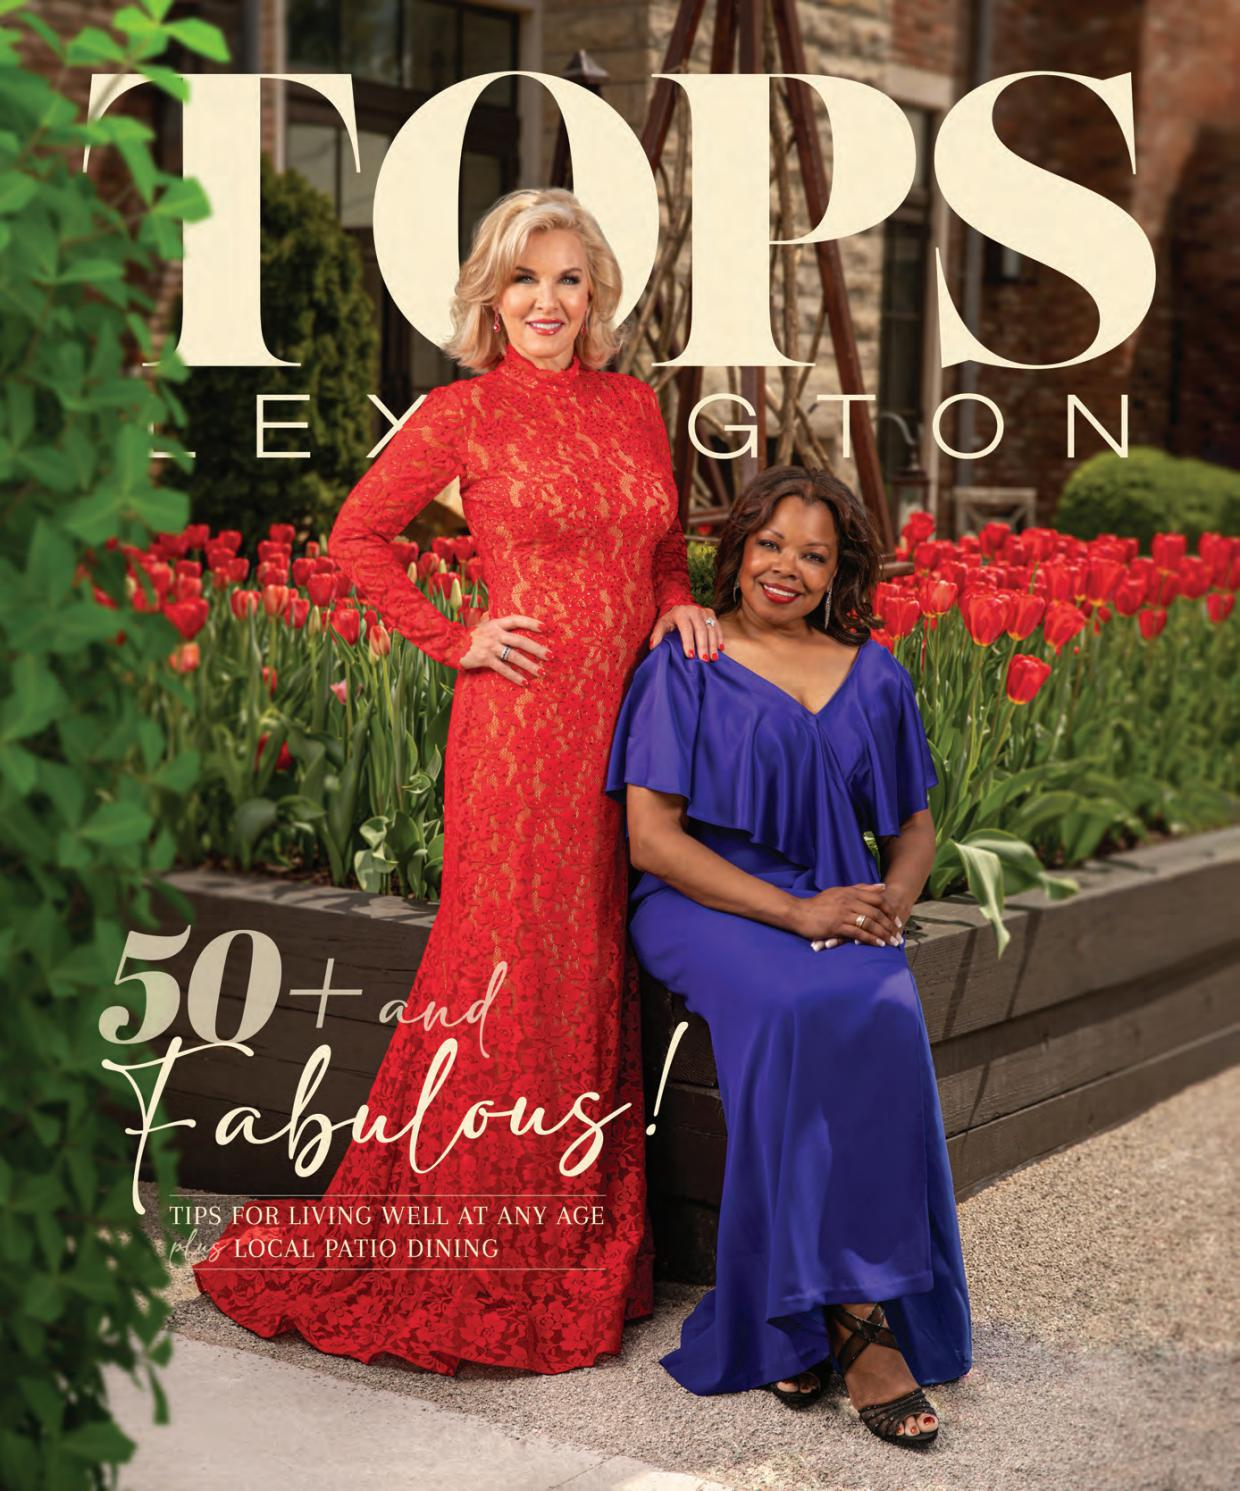 TOPS in Lexington May 20 by TOPS Magazine   issuu